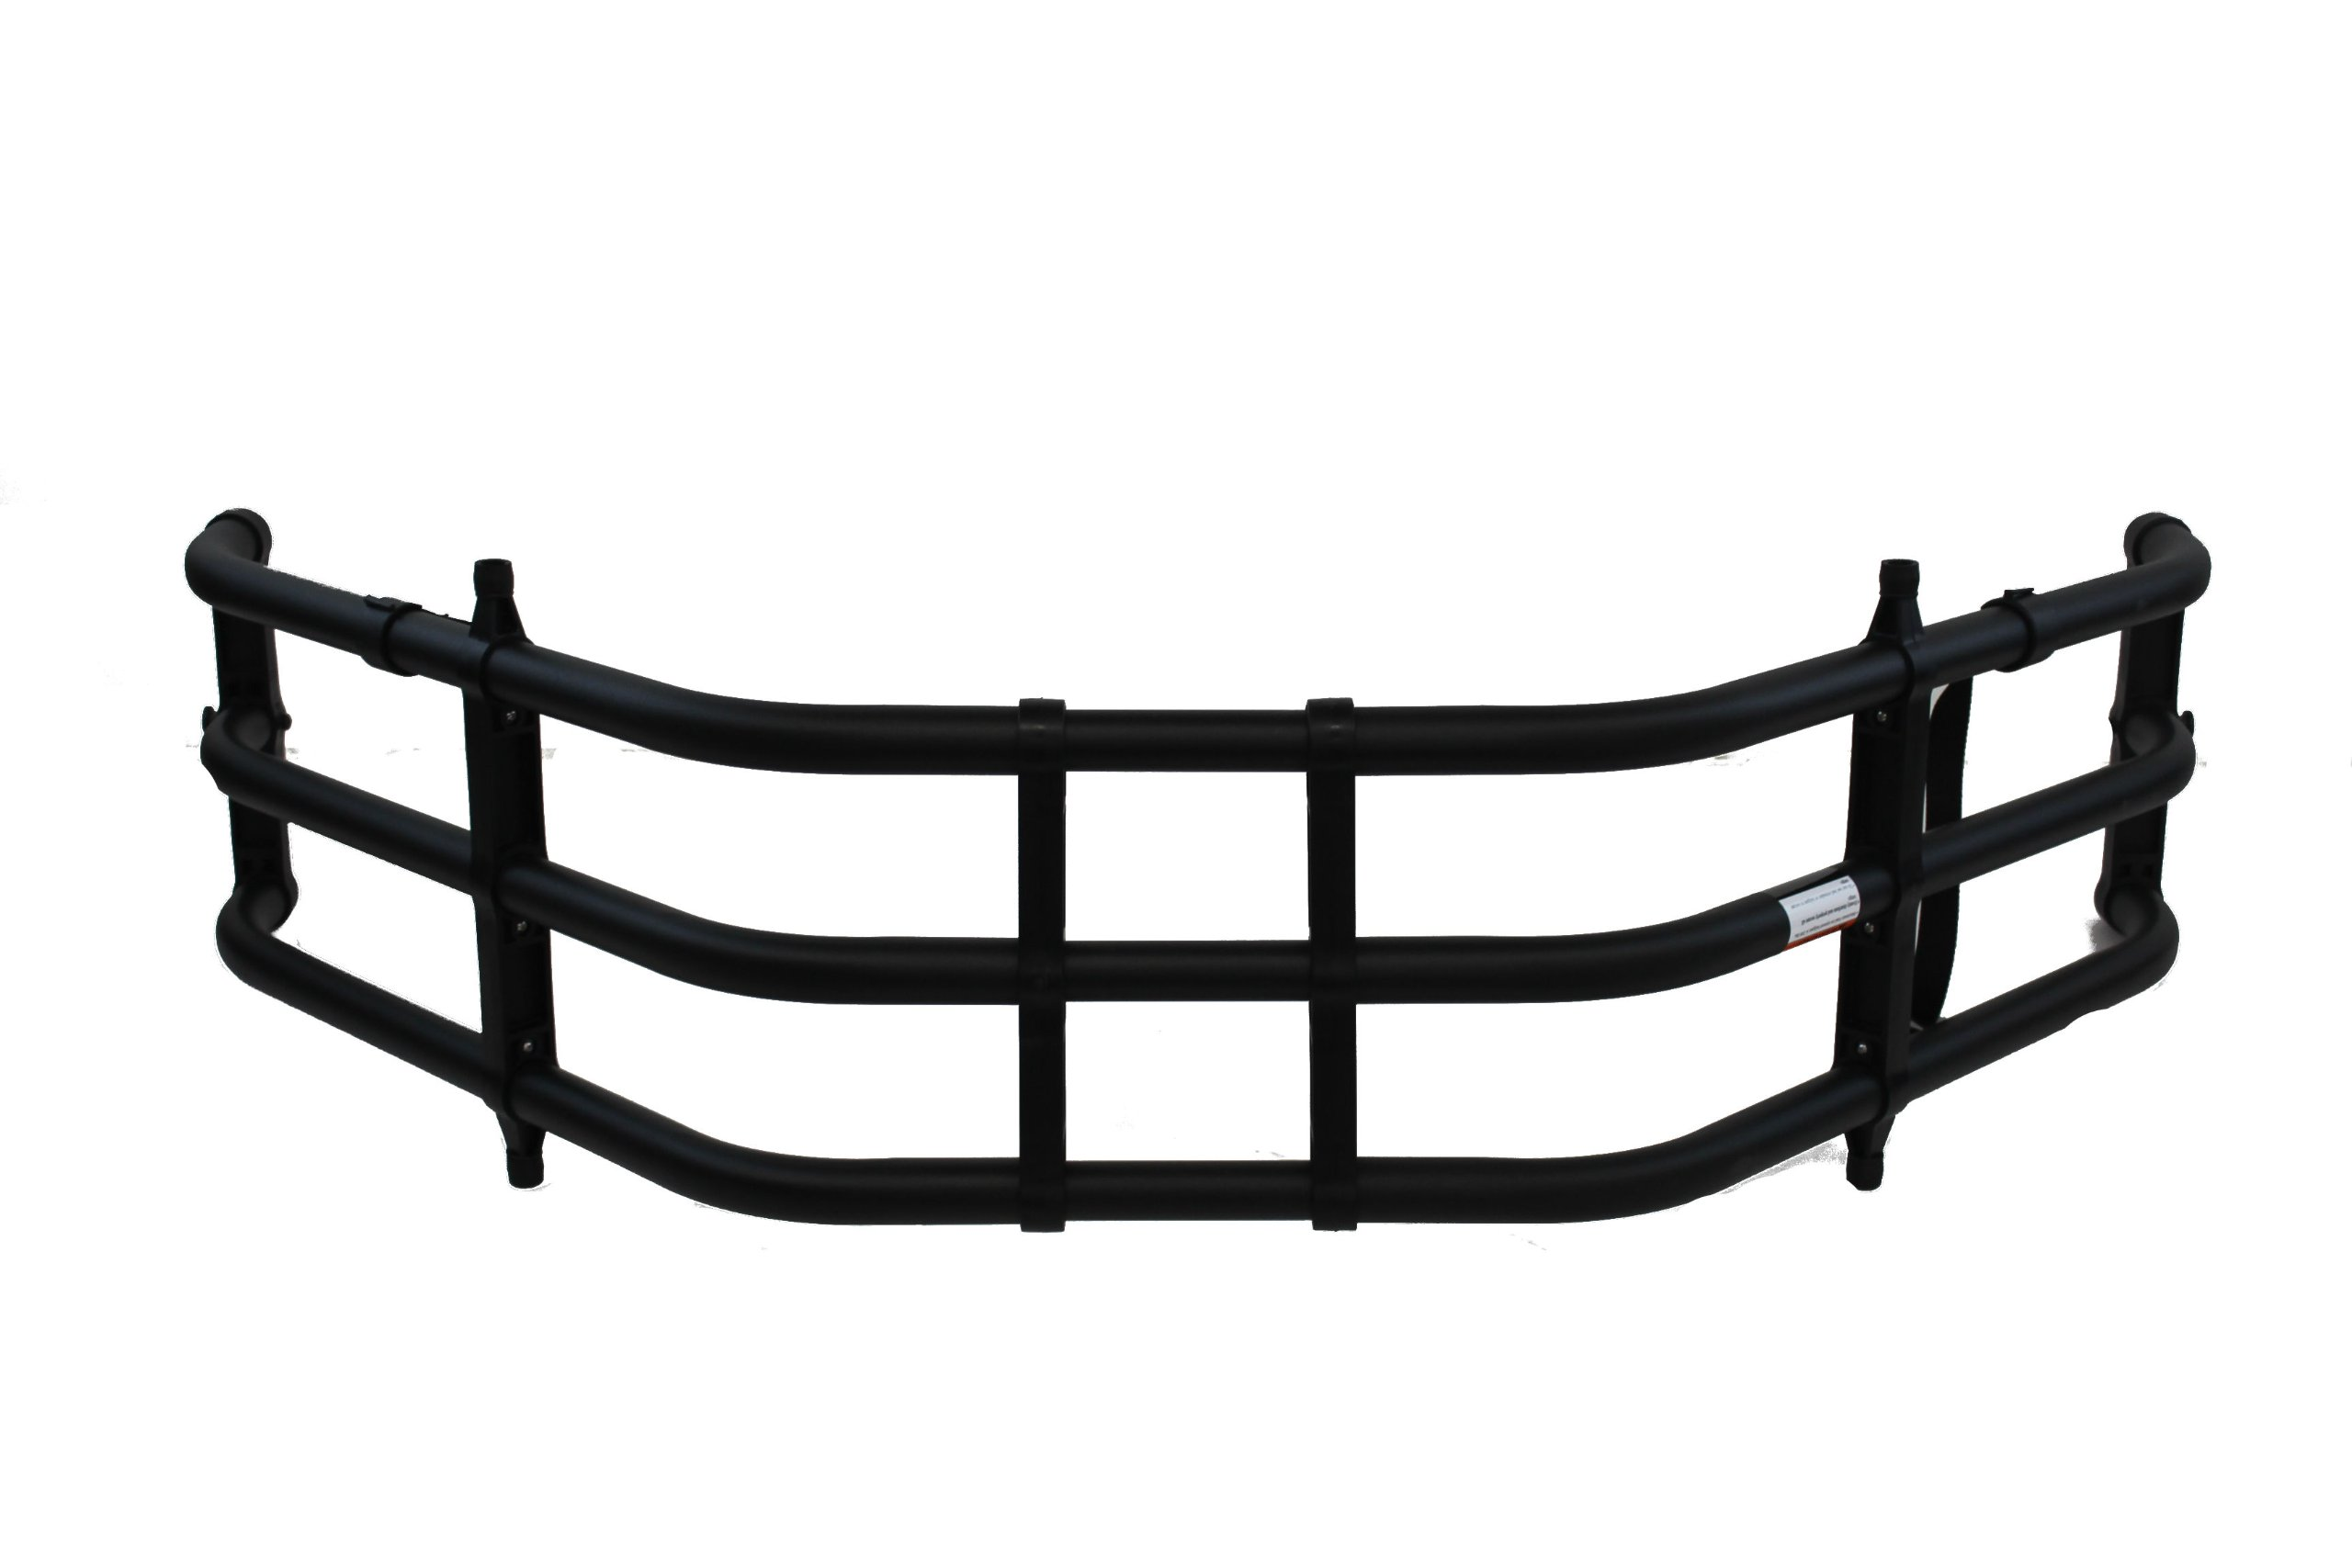 Genuine Nissan Accessories 999T7-WX160 Black Sliding Bed Extender